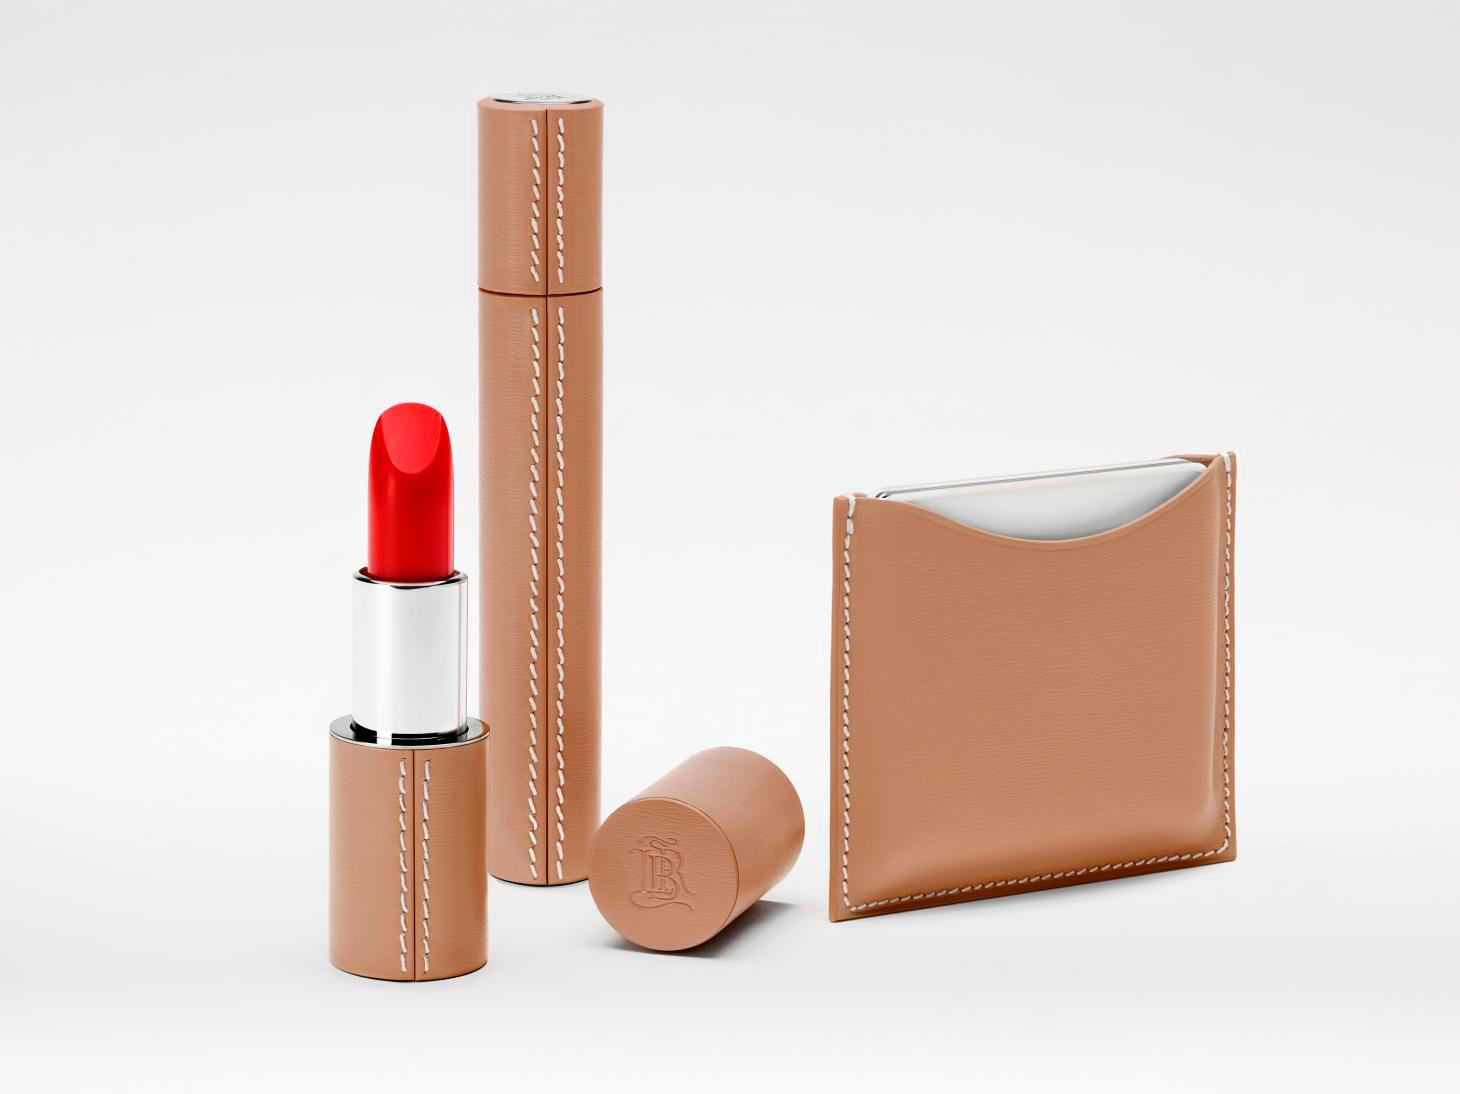 la bouche rouge makeup collection in beige leather cases